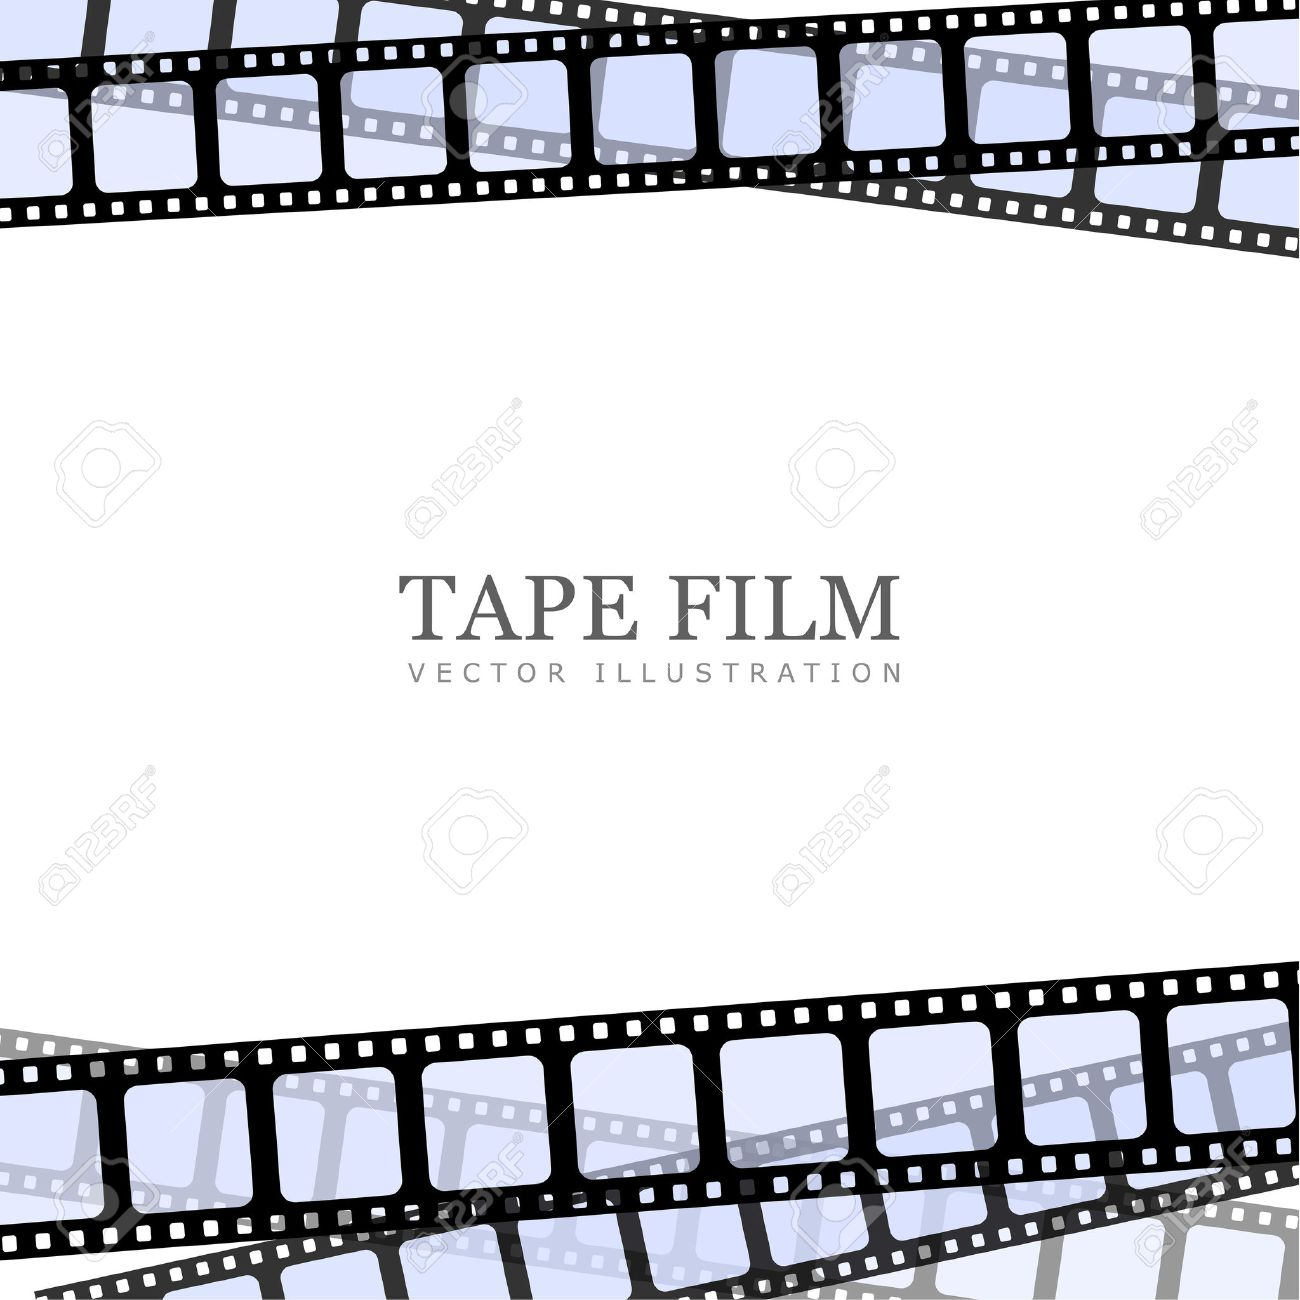 realistic illustration of film strip on white background template royalty free cliparts vectors and stock illustration image 53171270 realistic illustration of film strip on white background template